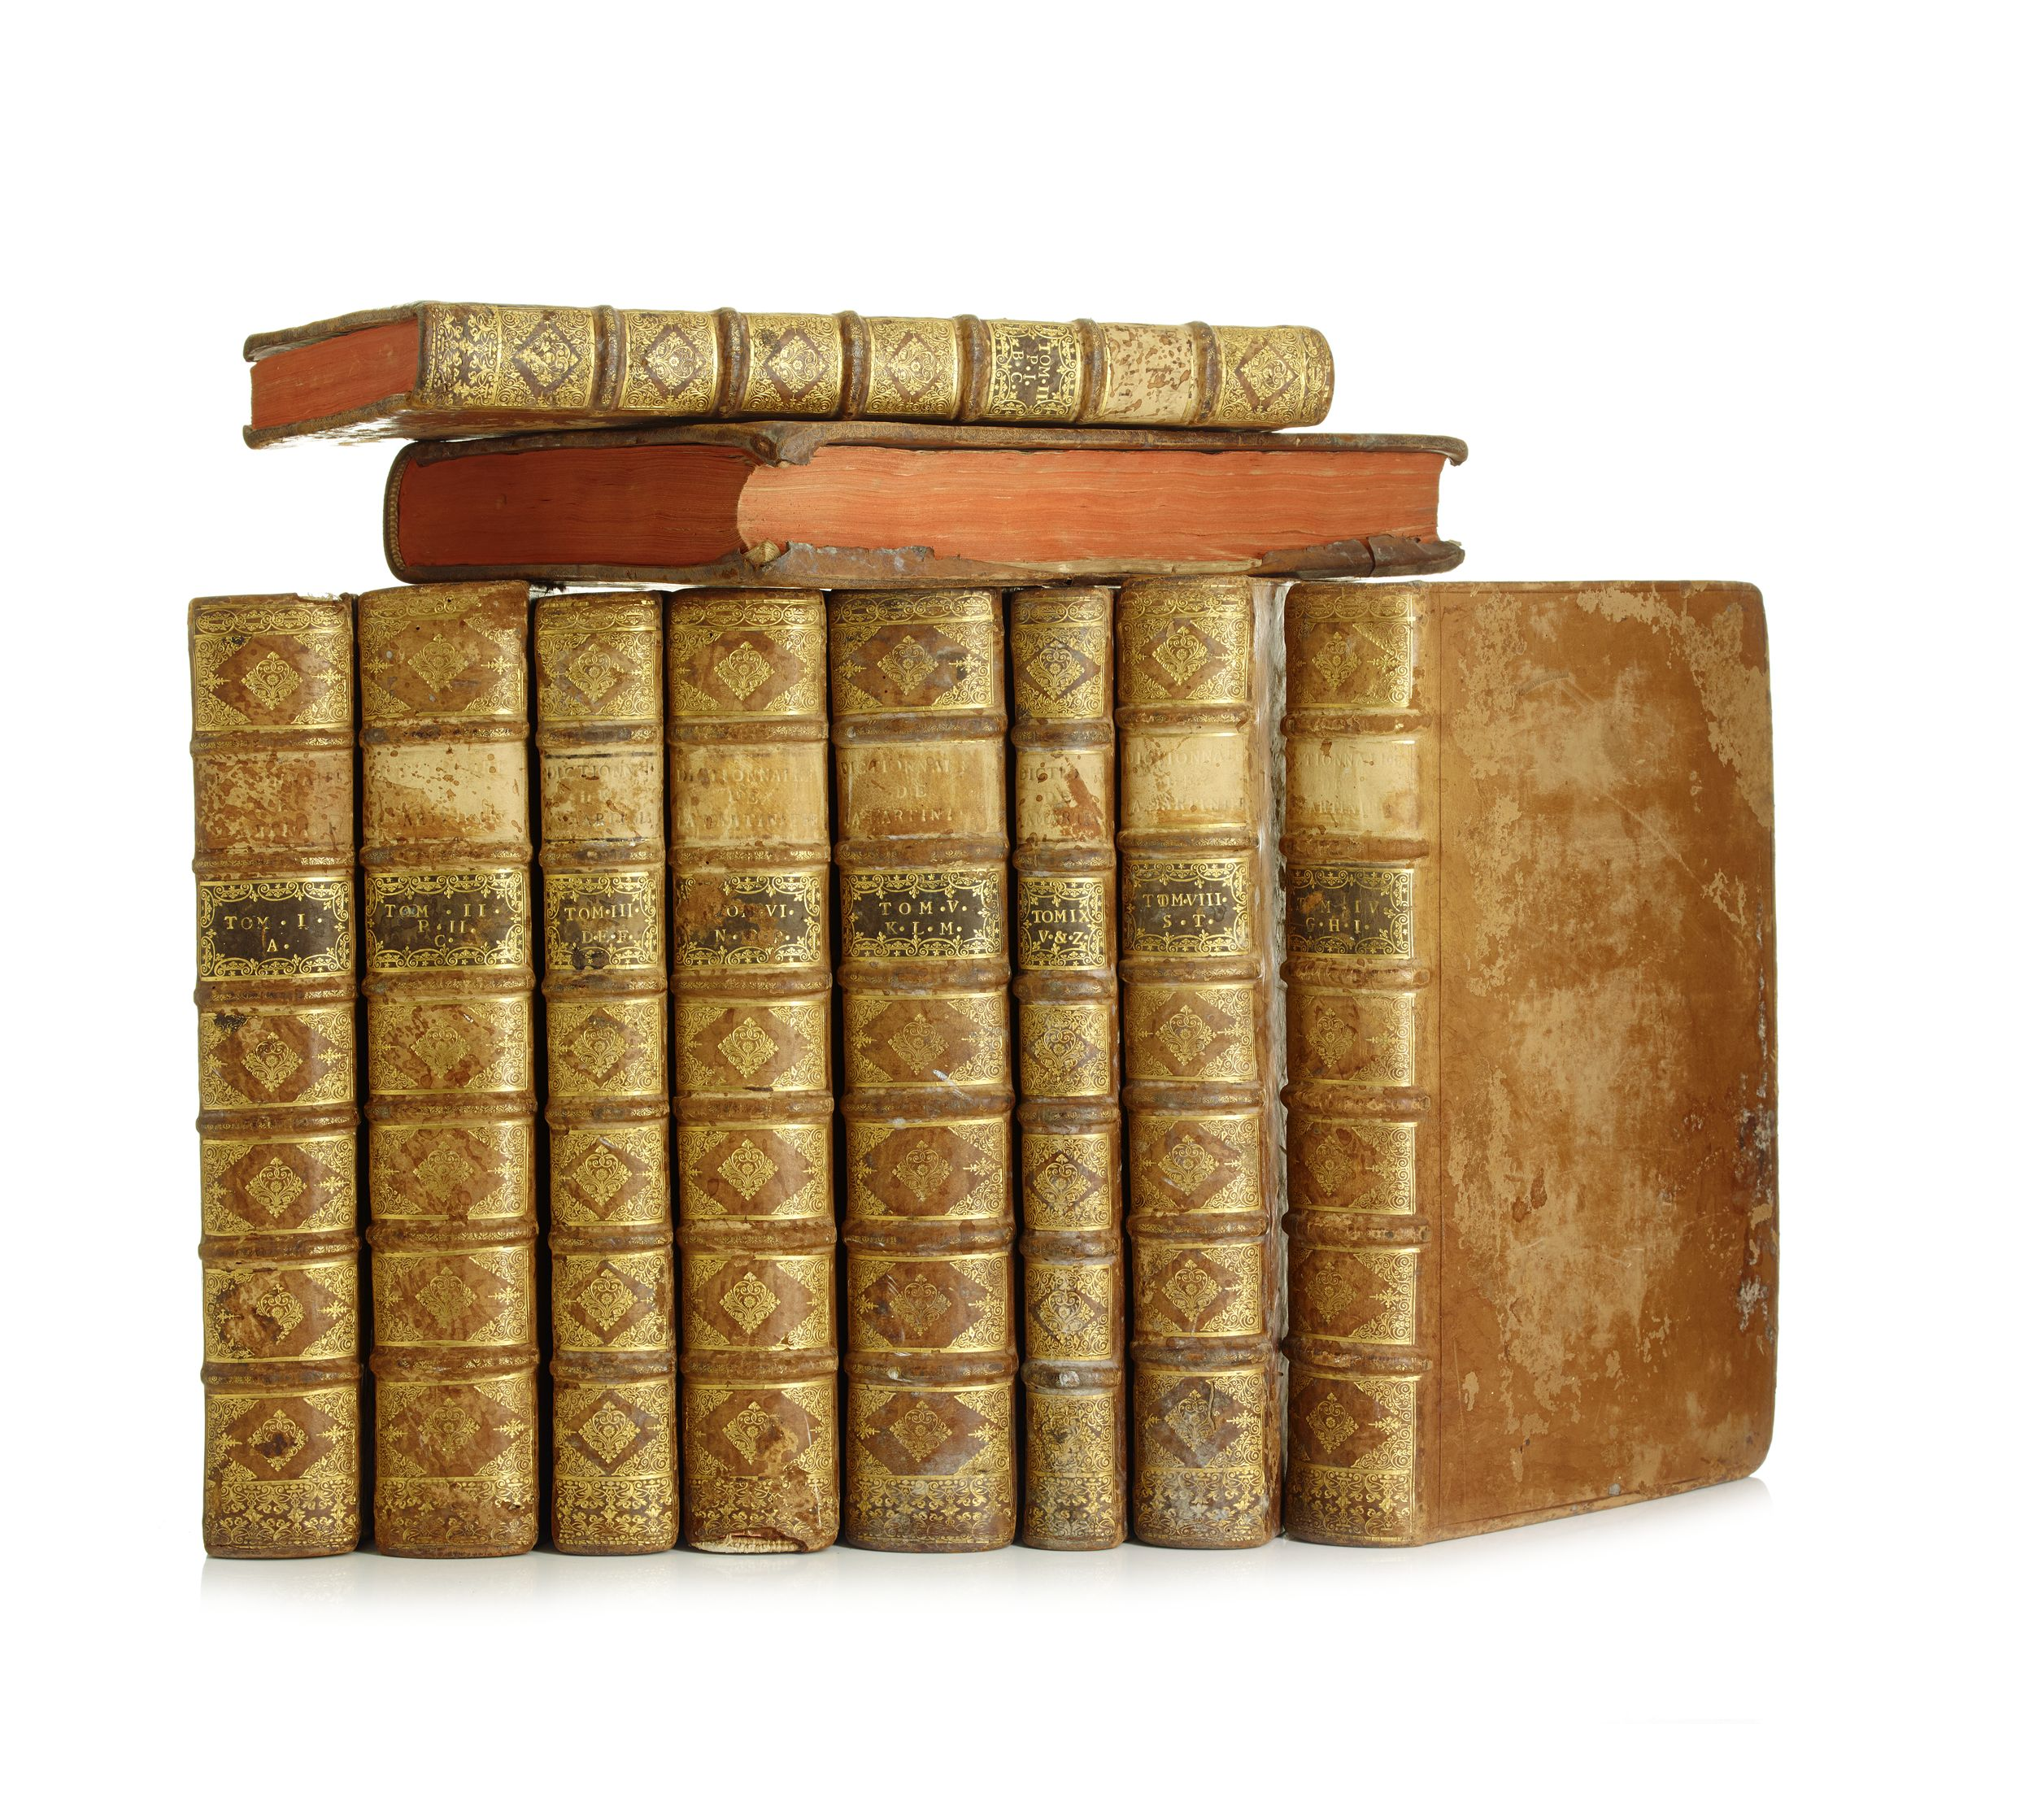 Bruzen de la Martiniere's great encyclopedia